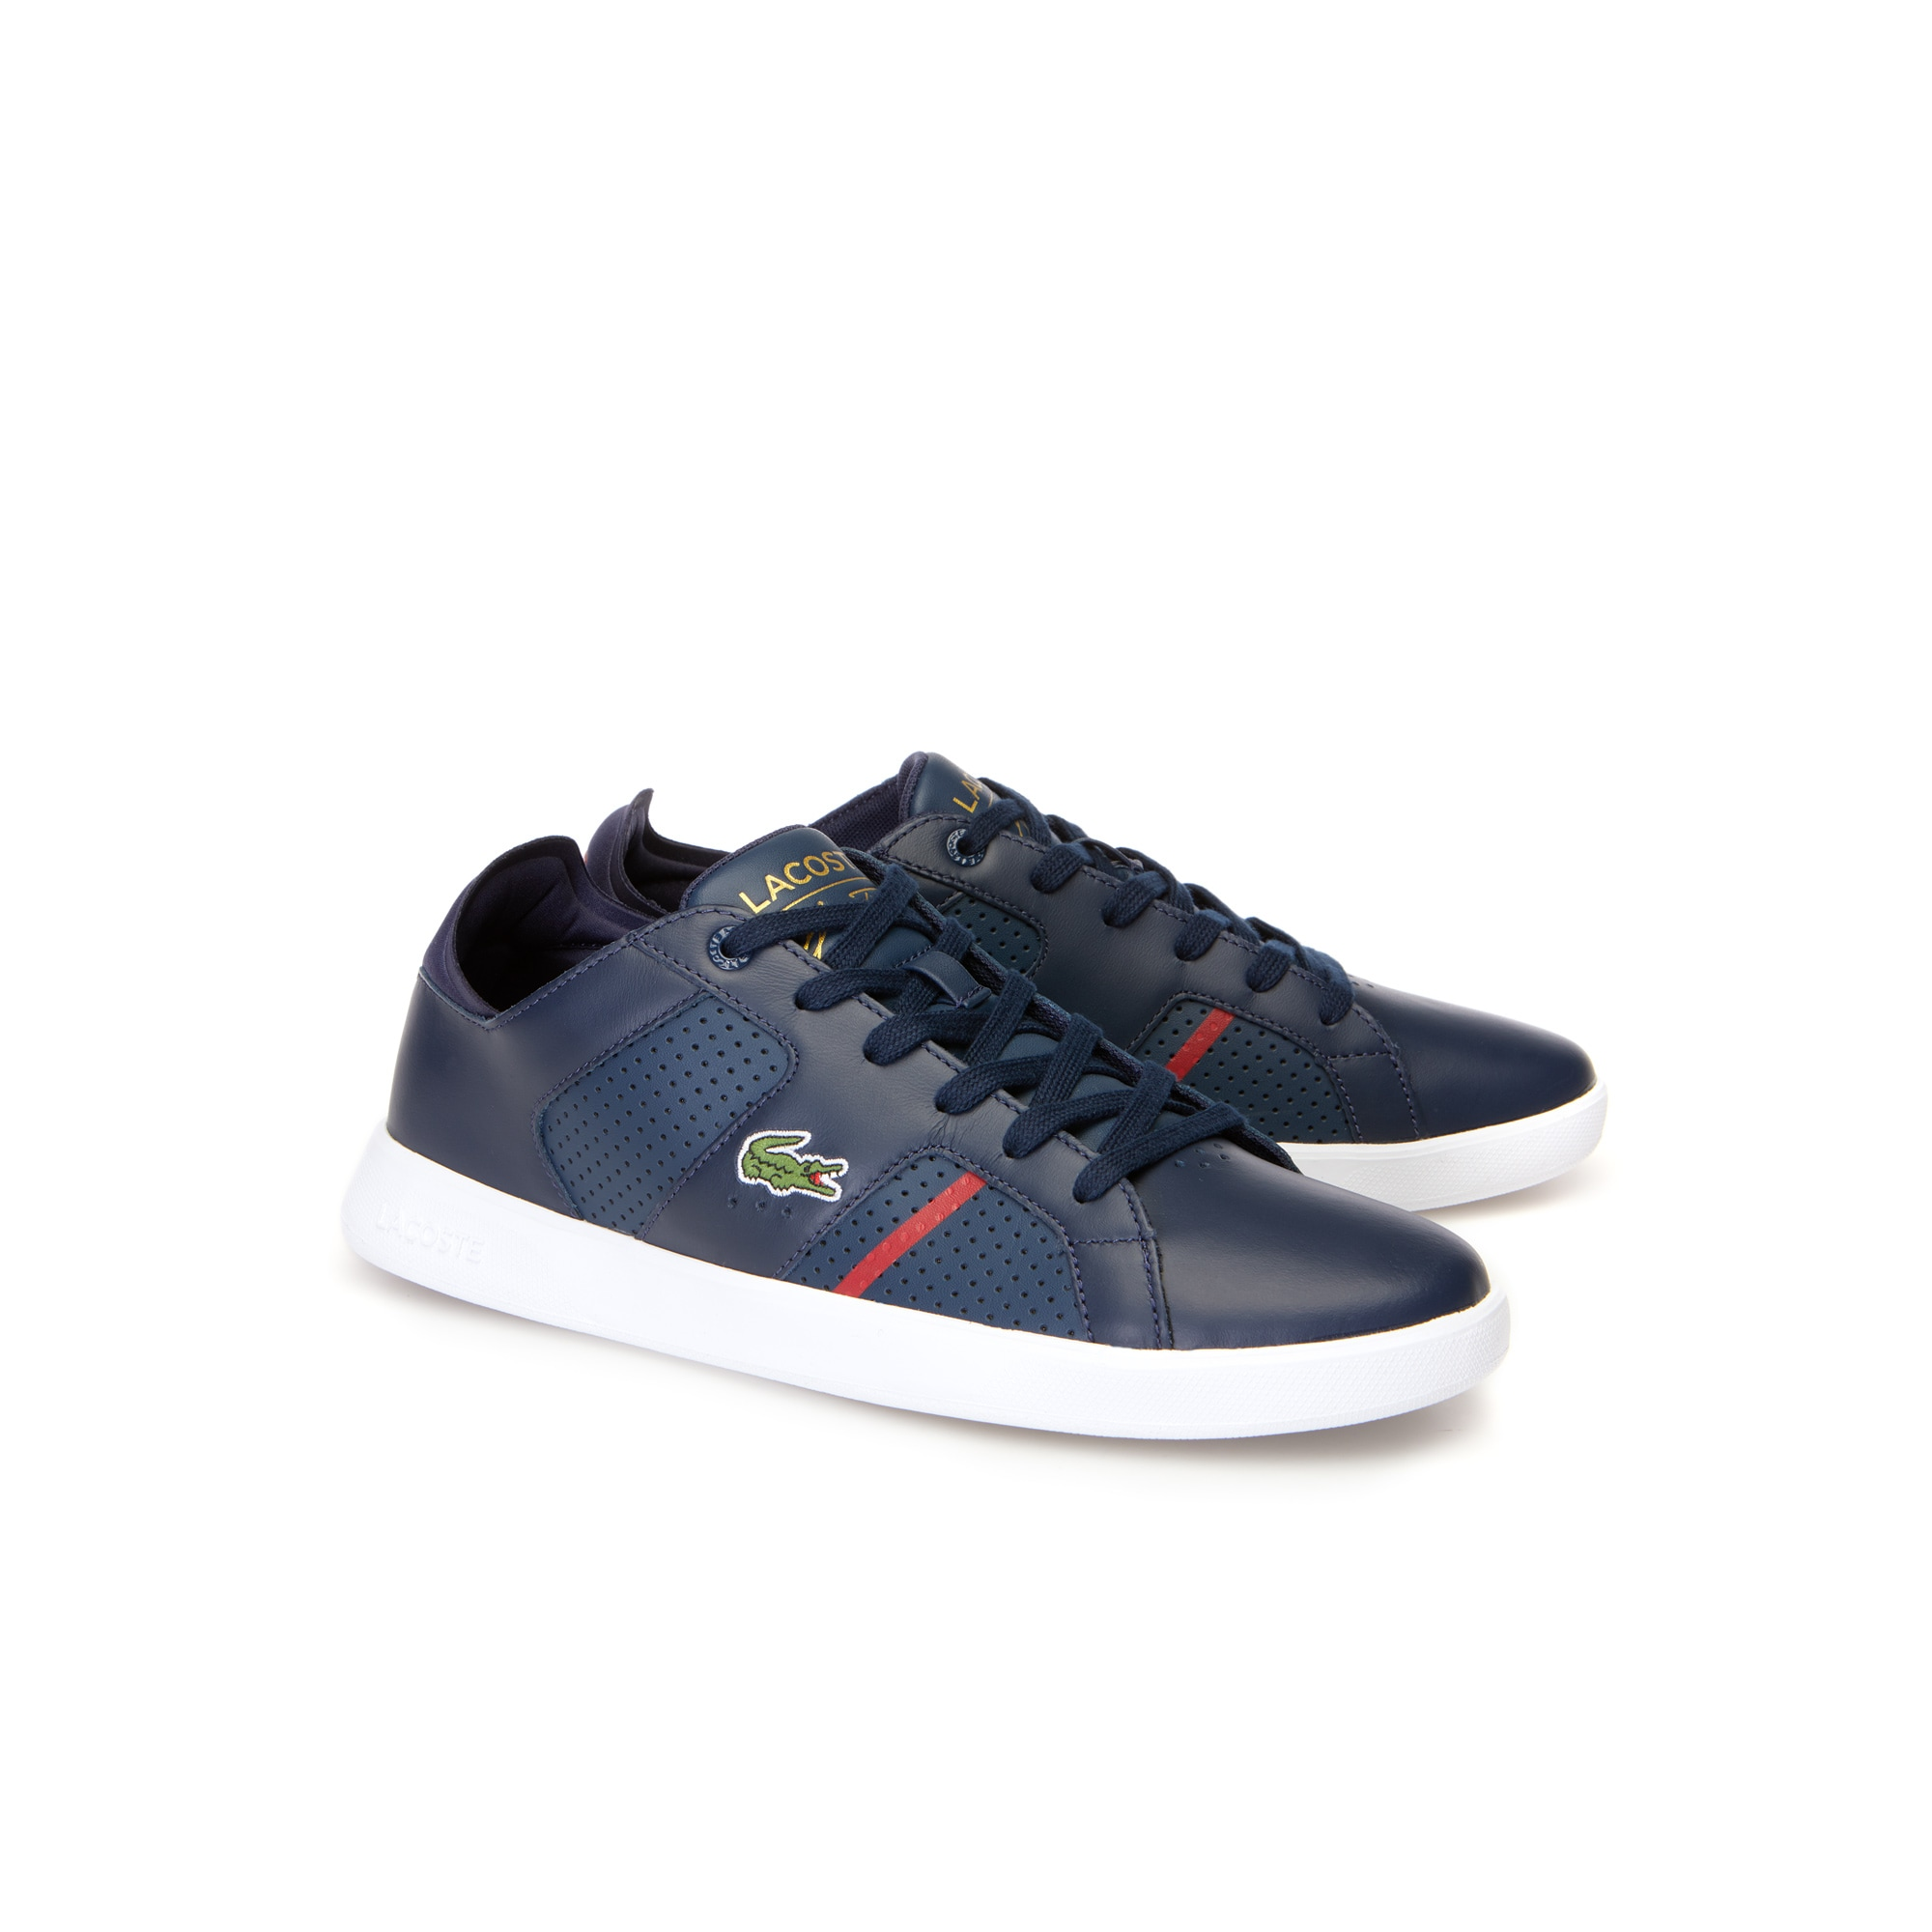 Brand New Lacoste RENE SPORT Mens Trainers/Shoes Size UK 9.5 / EU 44 Red